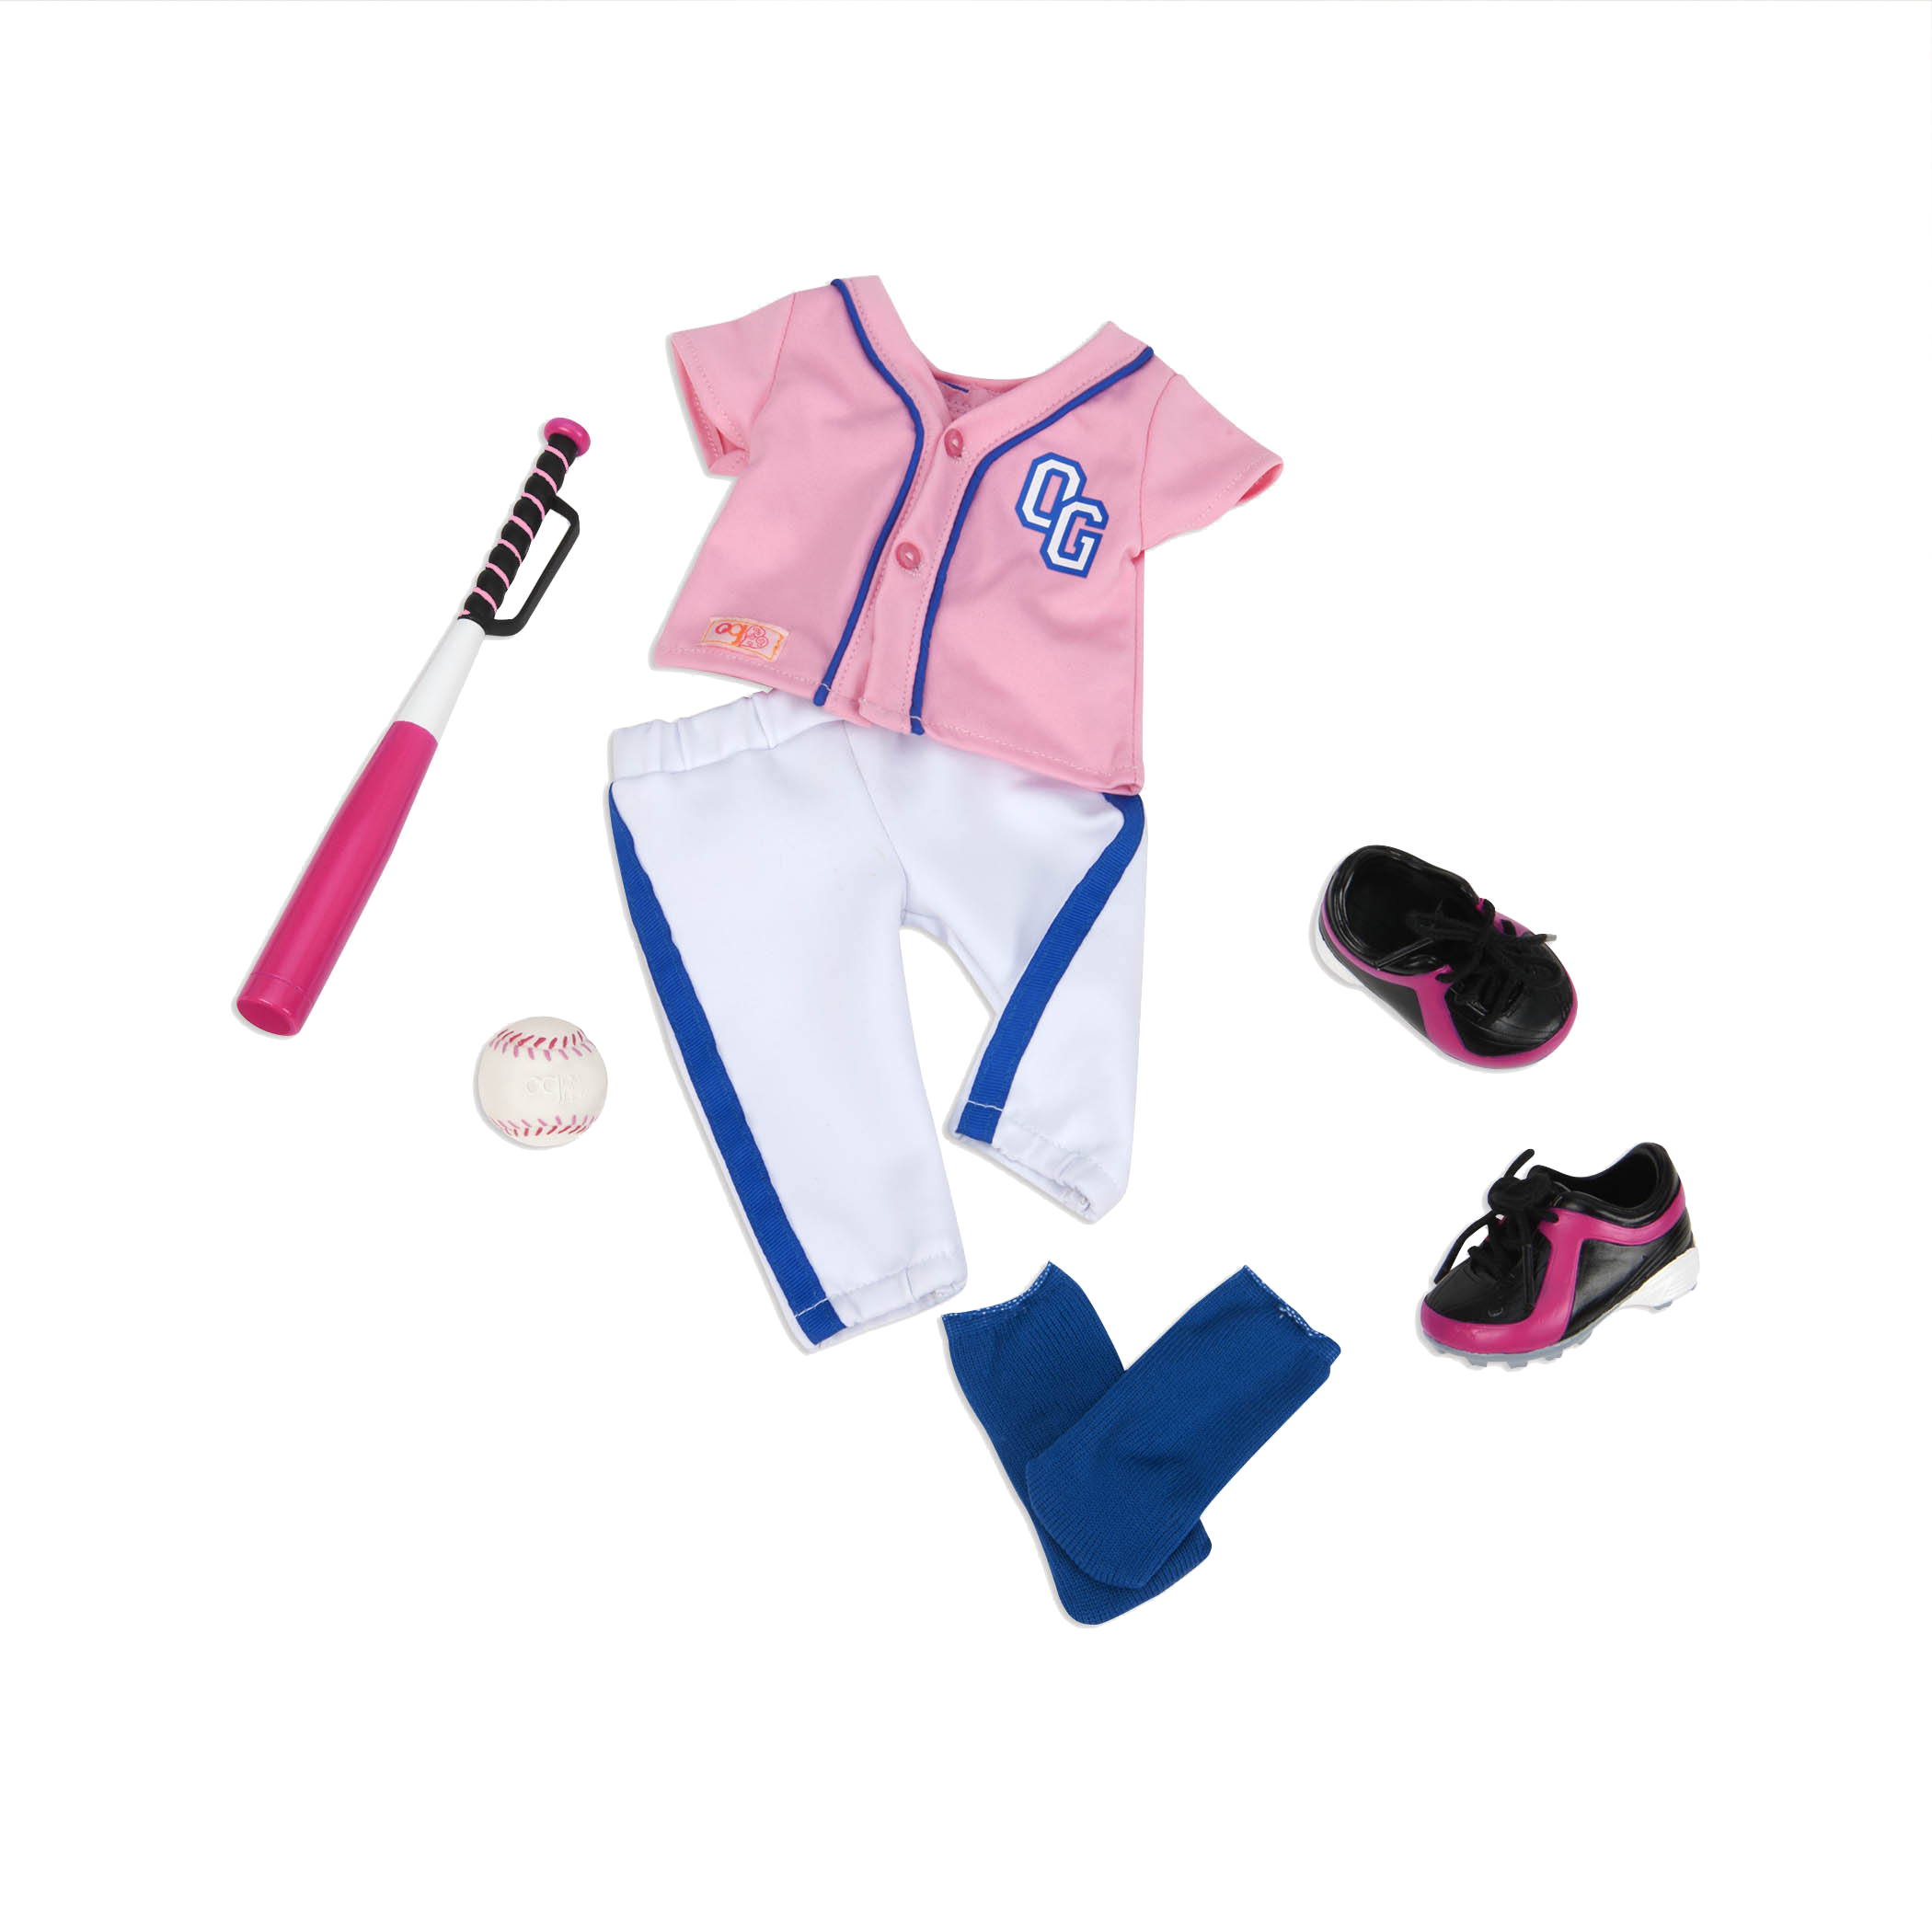 Hit A Homerun baseball outfit